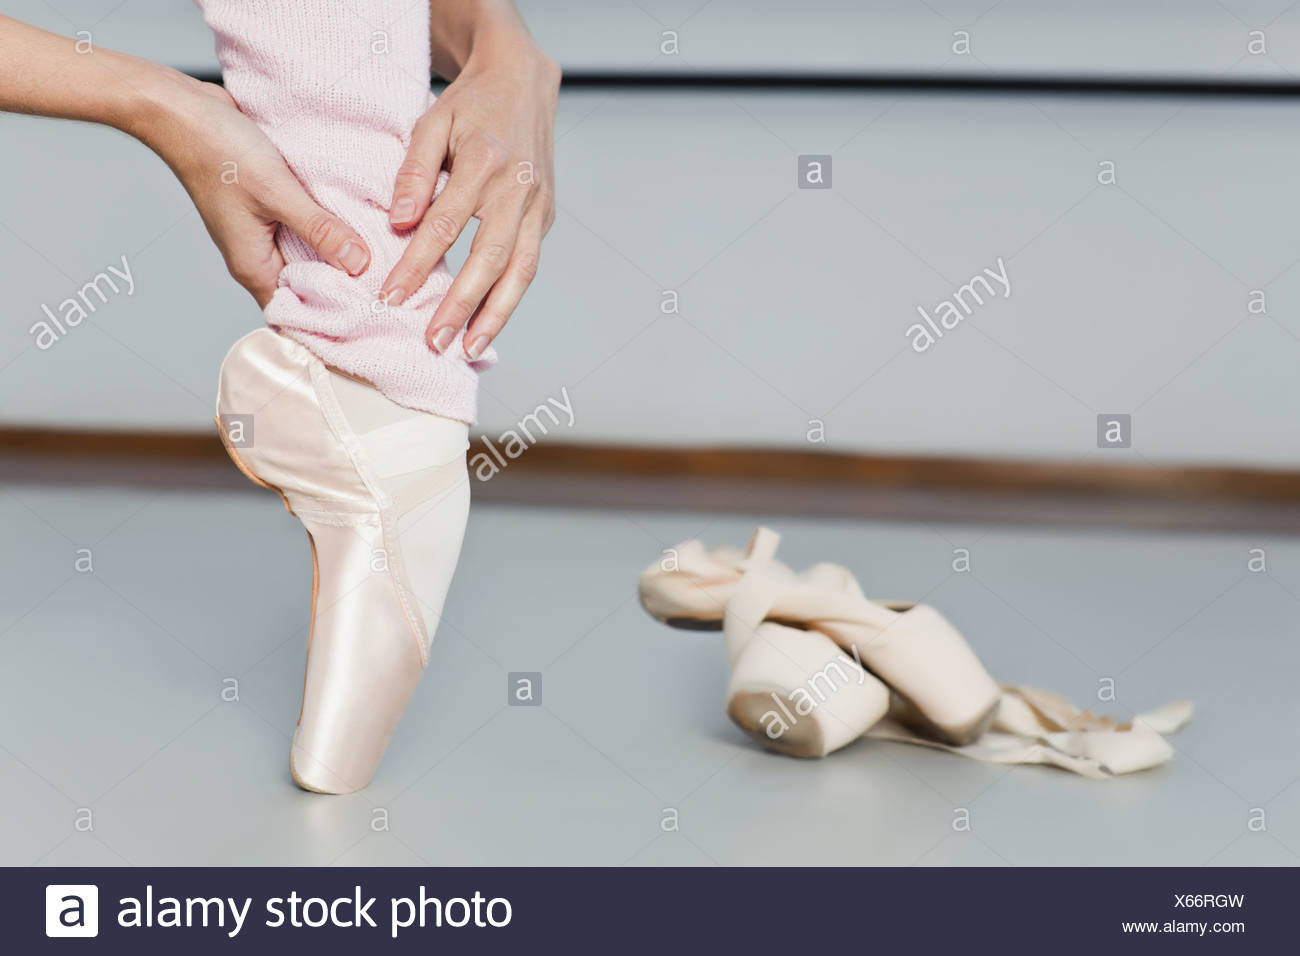 Ballet dancer examining toes on pointe - Stock Image